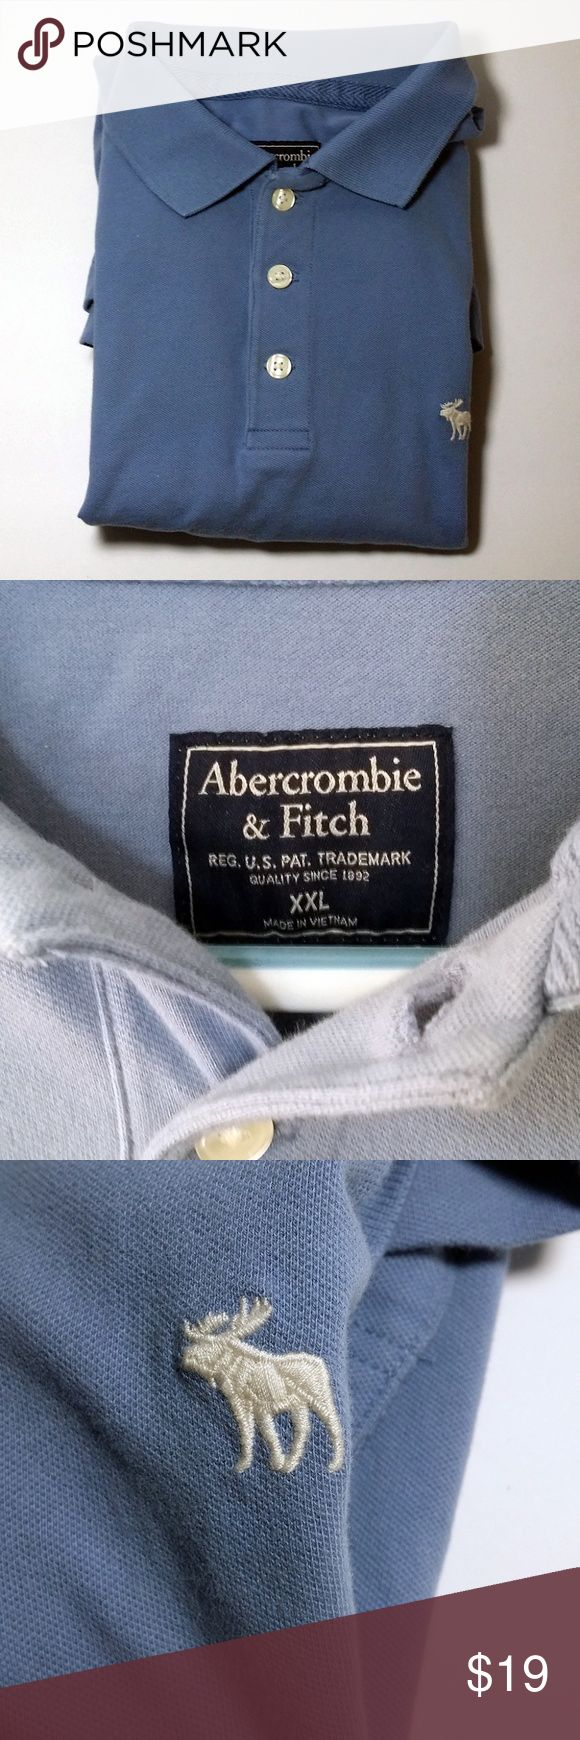 Abercrombie & Fitch Men's Collared Shirt New Never been worn Men's collared shirt. Crease and wrinkles due to folding. Can  be removed once washed or ironed. Abercrombie & Fitch Shirts Tees - Short Sleeve